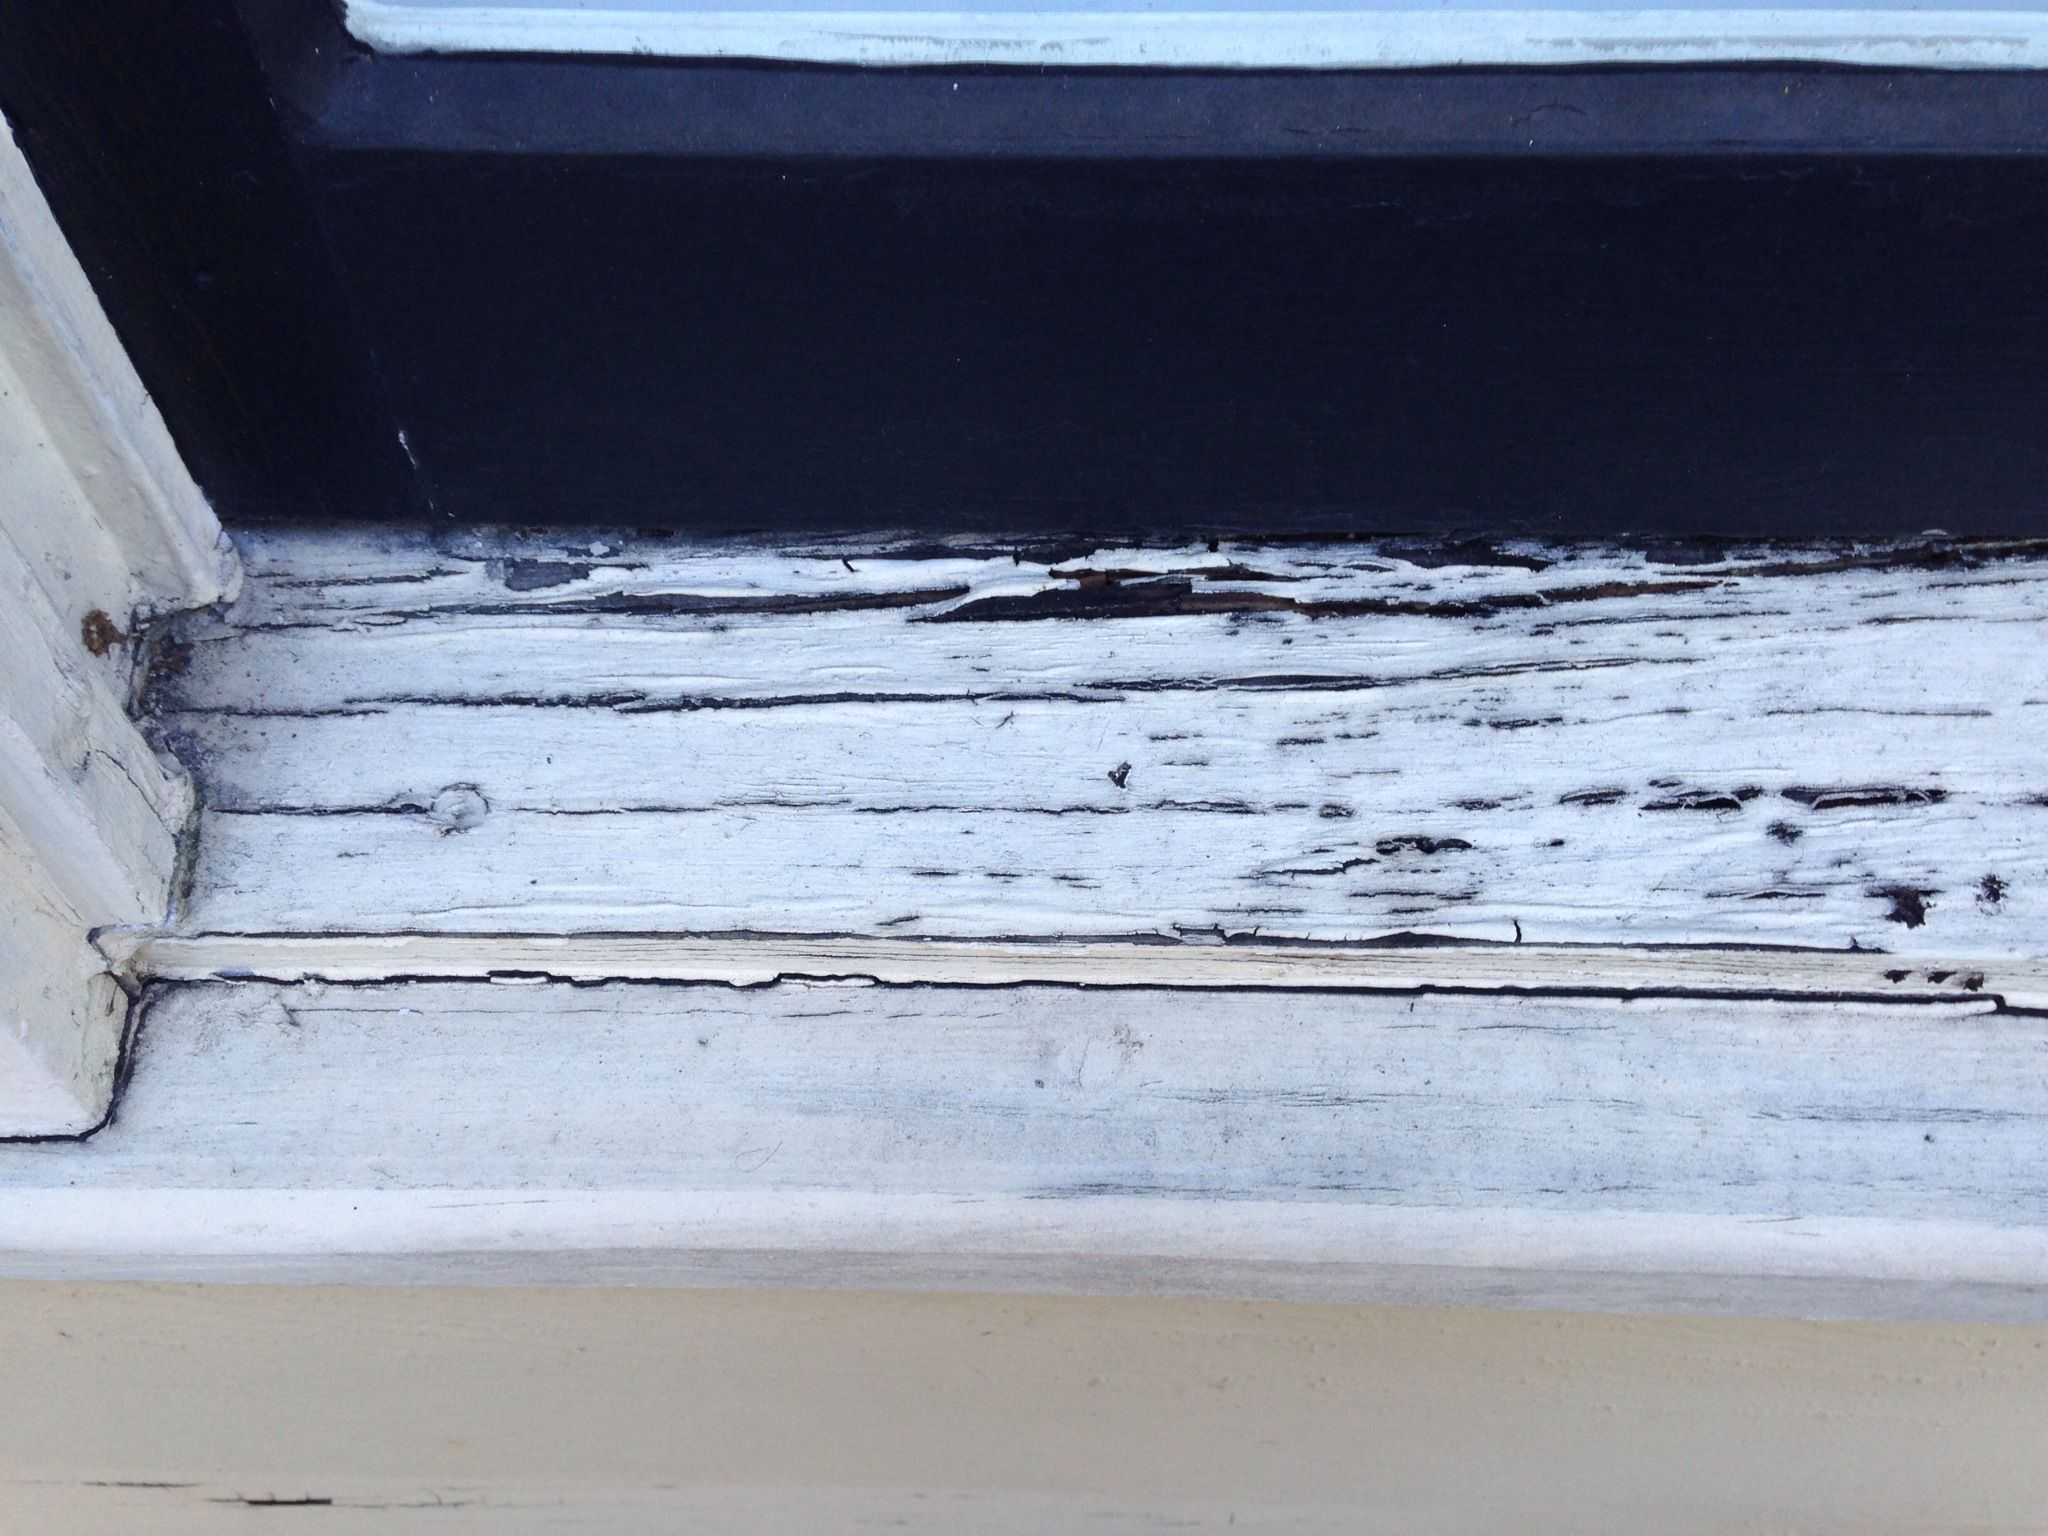 How To Repair Weathered Window Sills The Craftsman Blog Window Repair Window Sill Exterior Window Sill